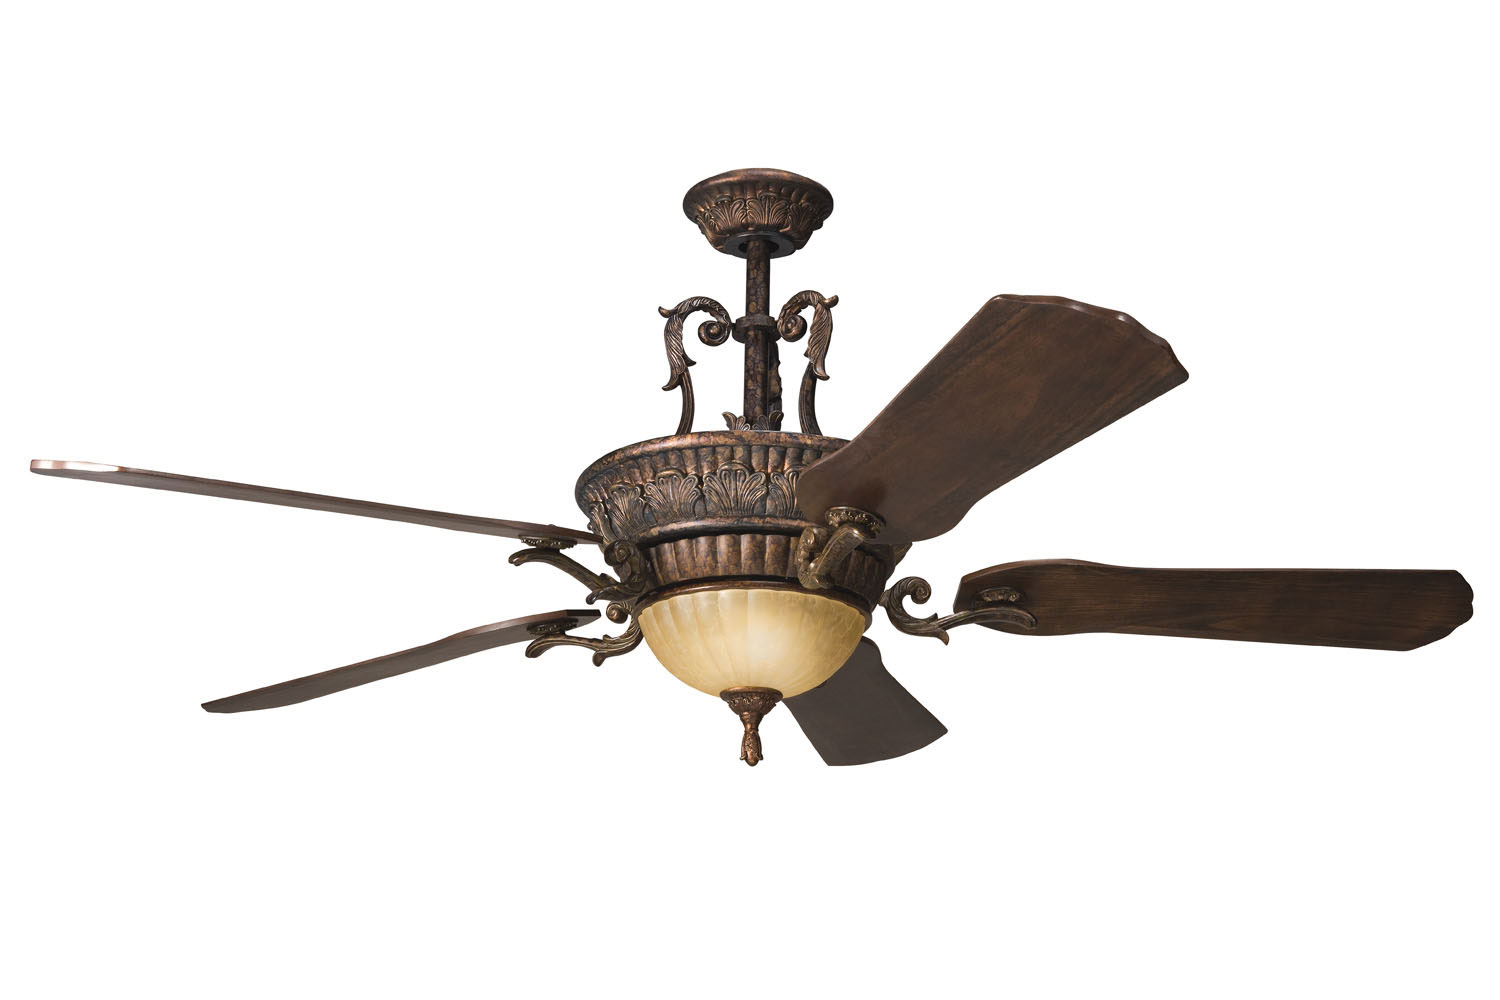 60 inchCeiling Fan from the Kimberley collection by Kichler 300008BKZ